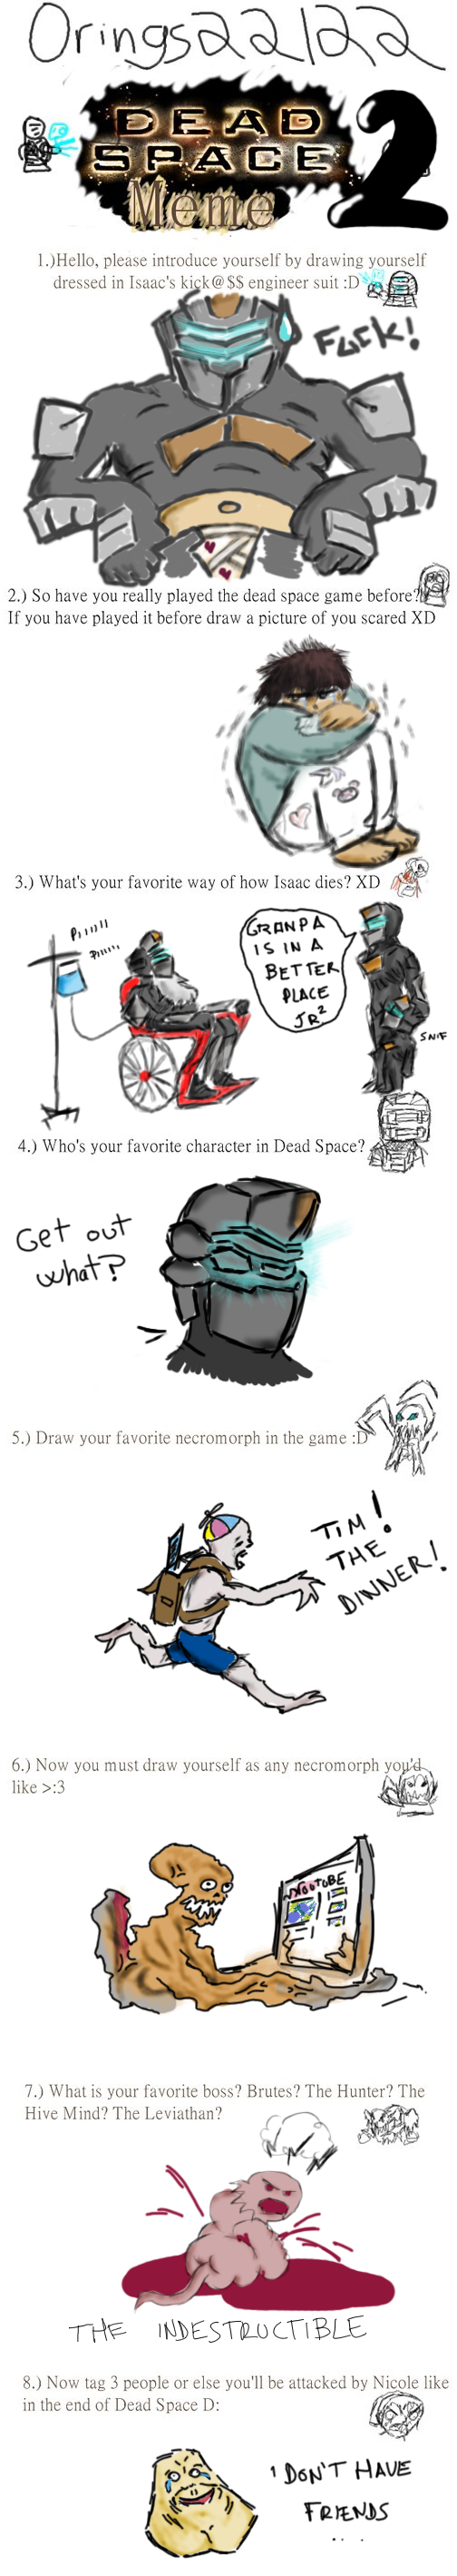 Dead space 2 meme by kur0s4k1